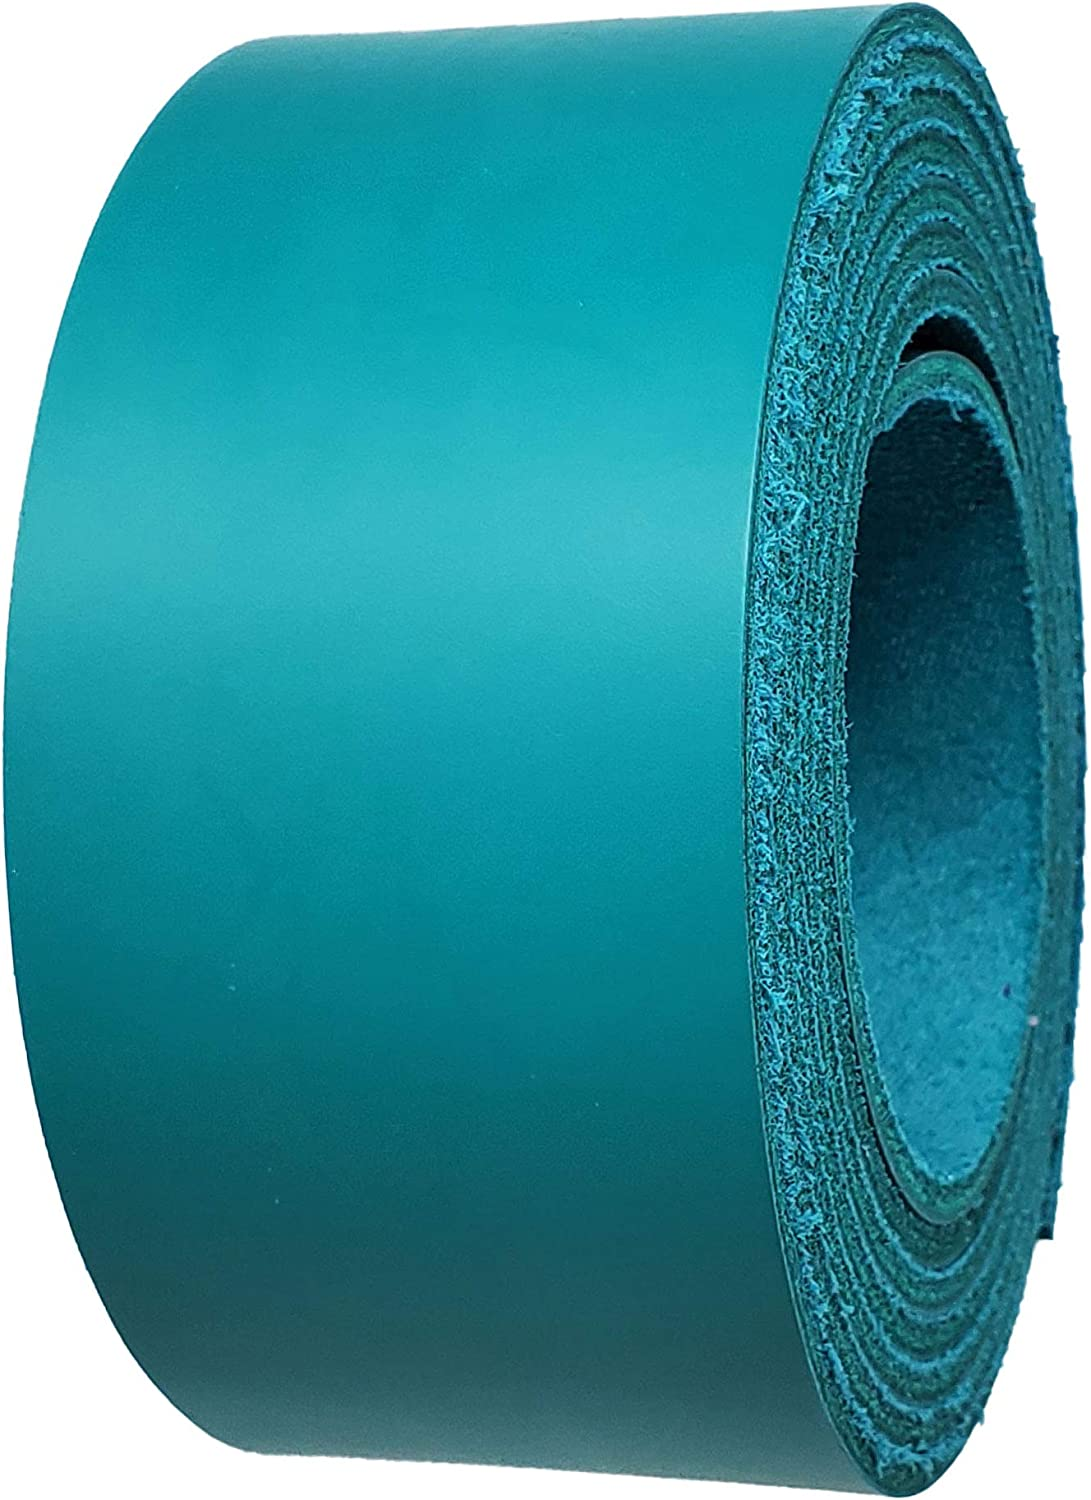 Jade Leather Strips Popular brand in the world 2 inch Credence Wide up 6-7 Long oz. Extra to 96 Inch